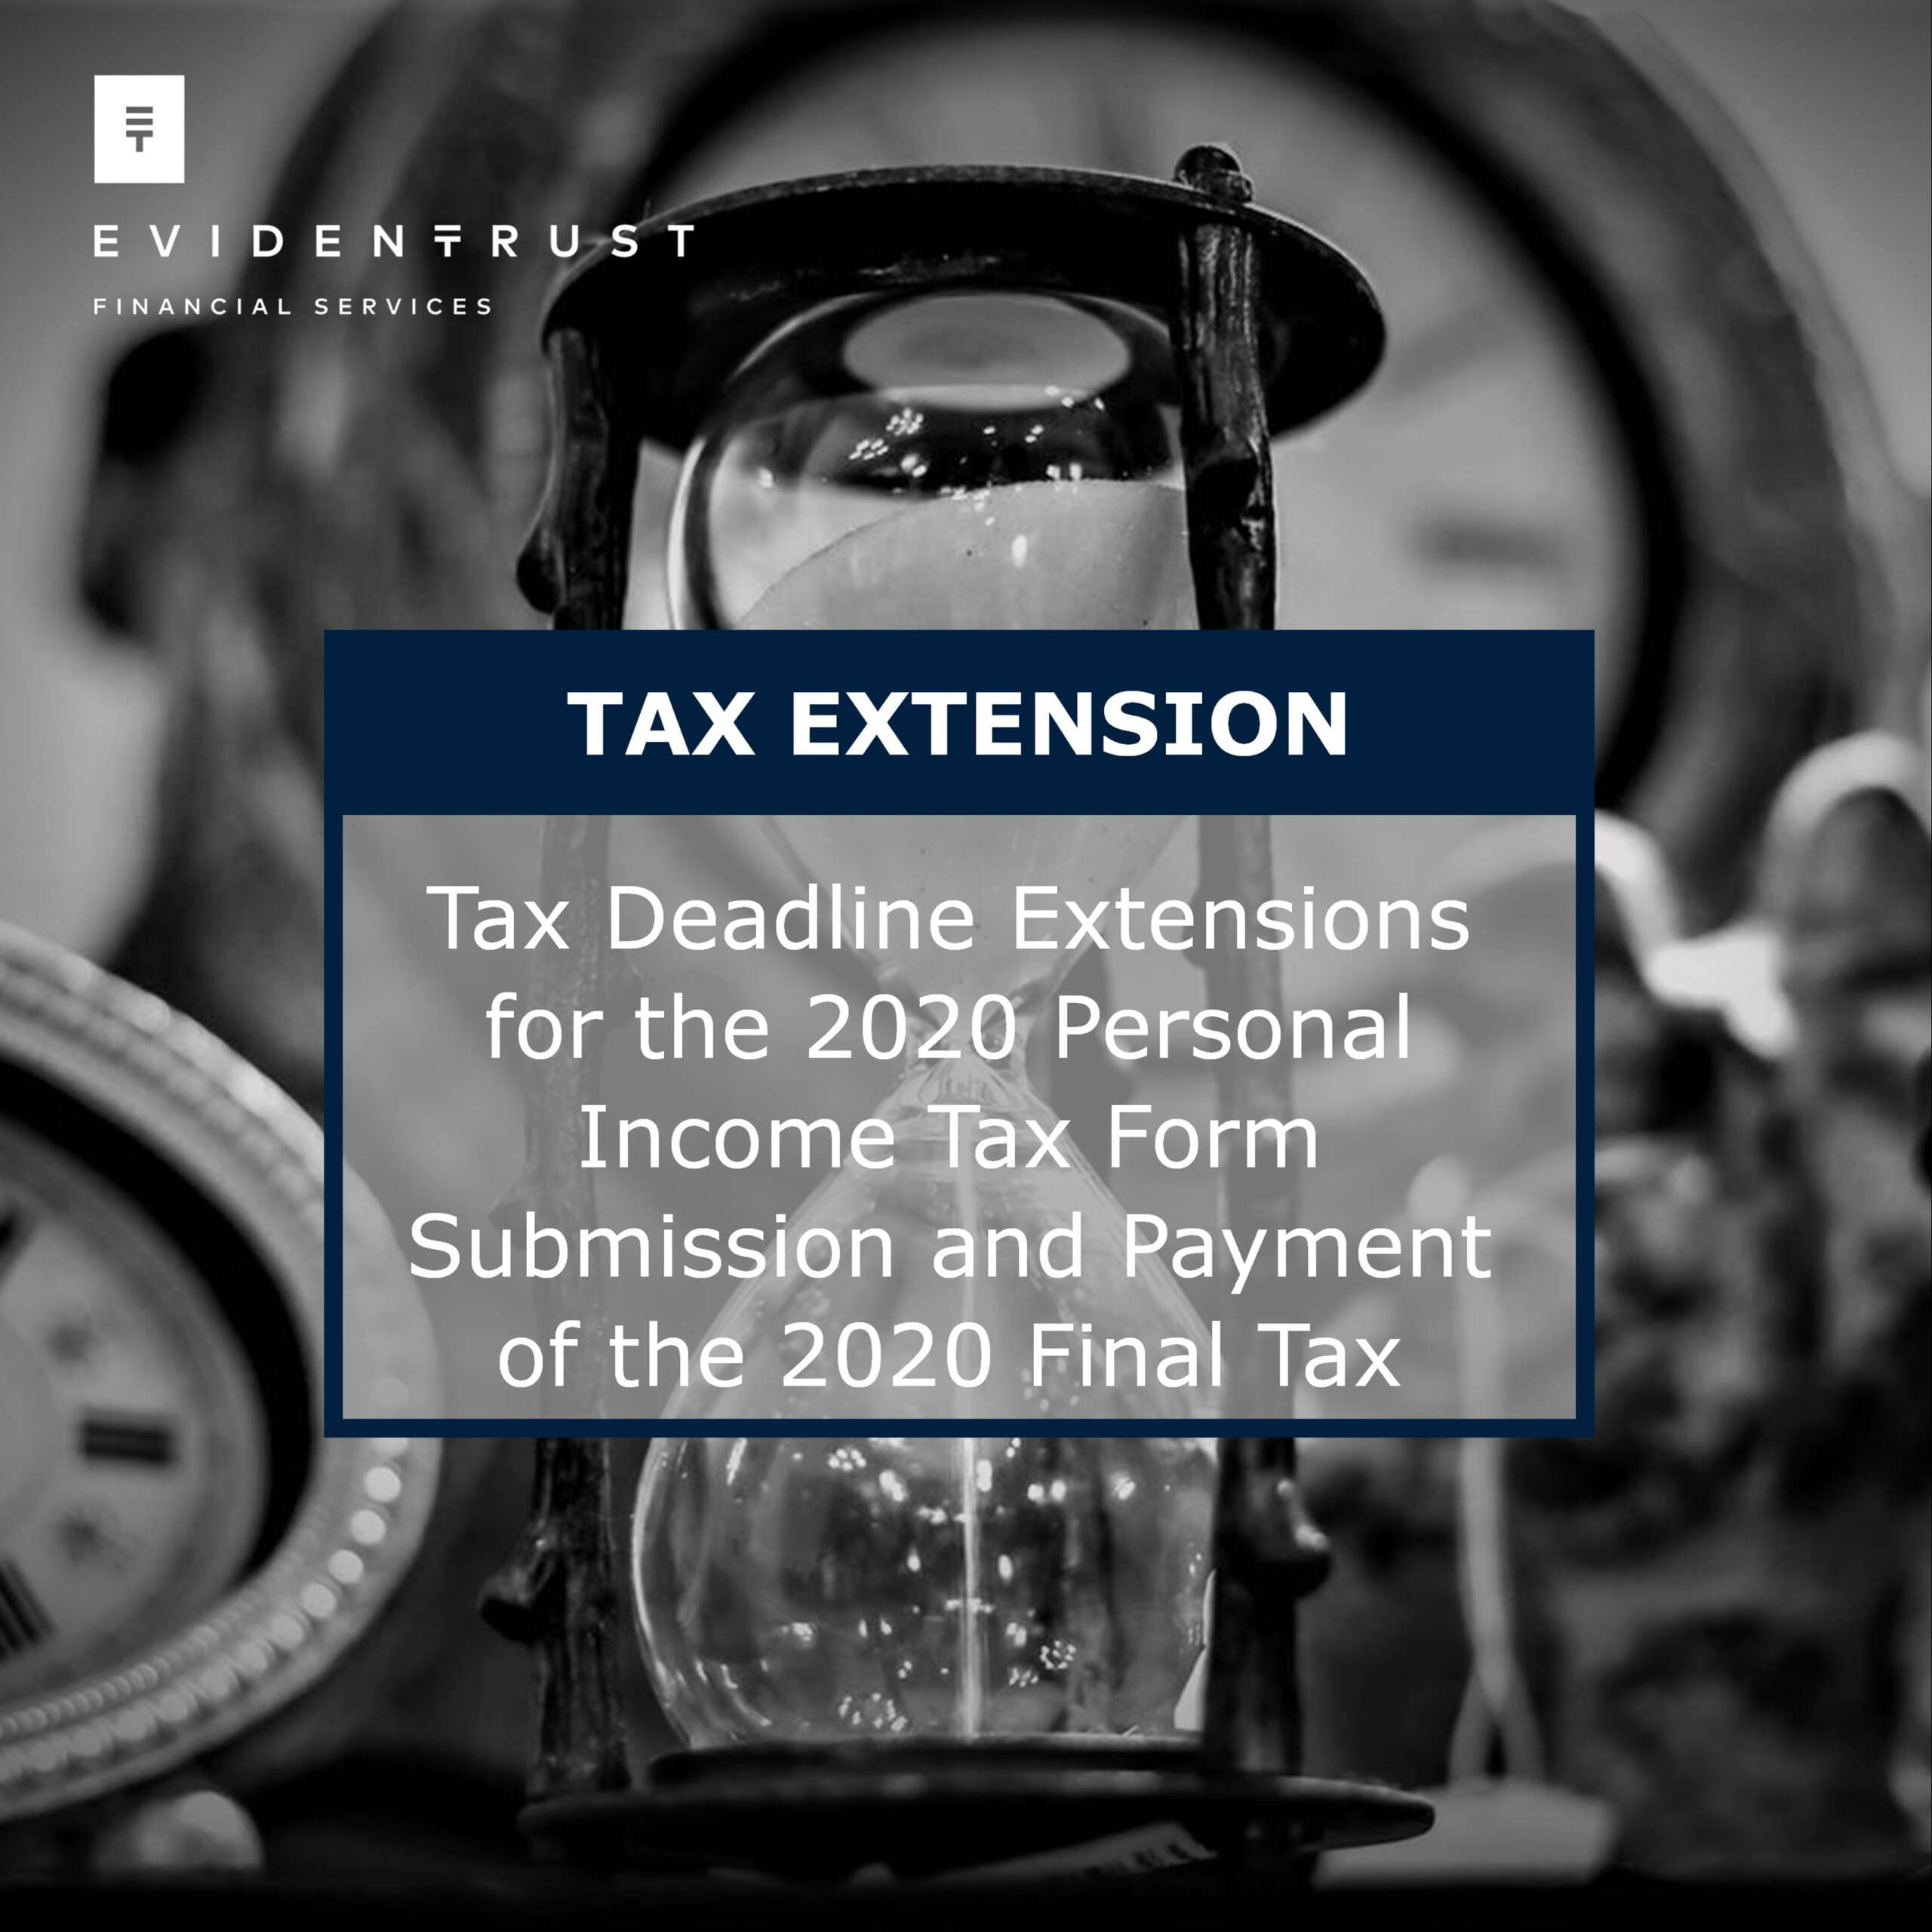 Extension of 2020 Personal Income Tax form submission and final tax payment deadlines